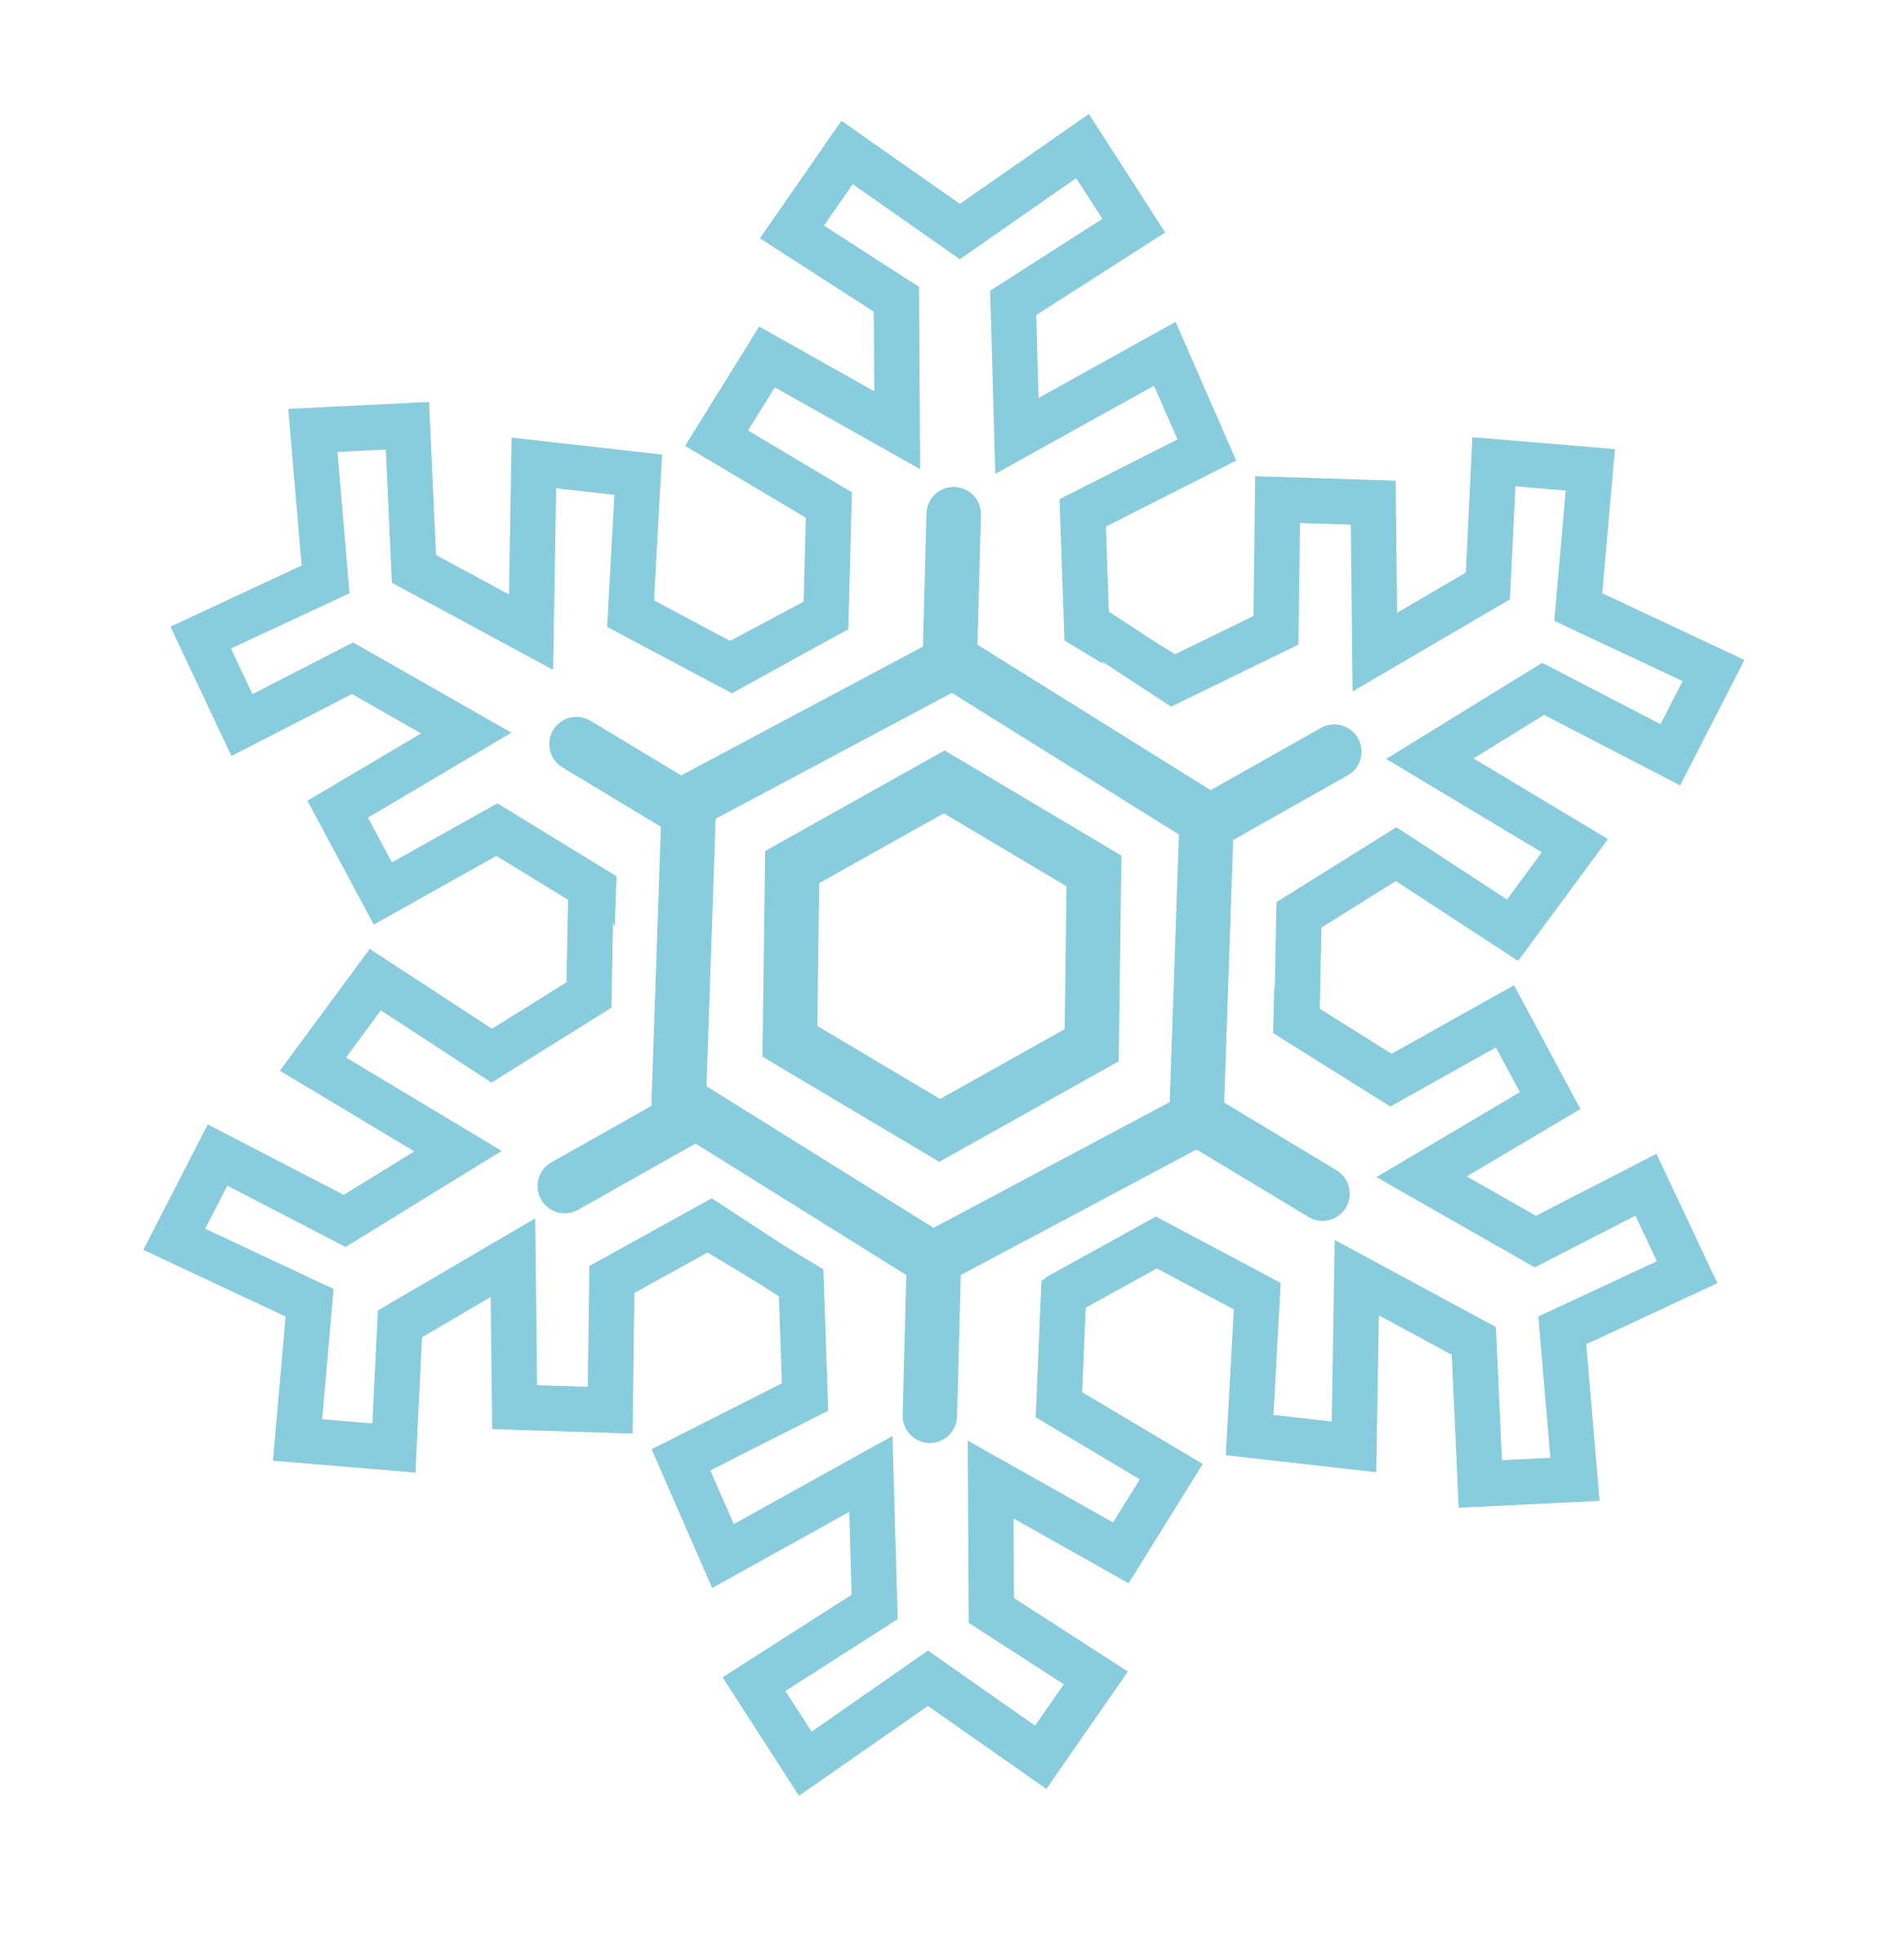 Snowflake (stylized) by Kliponius